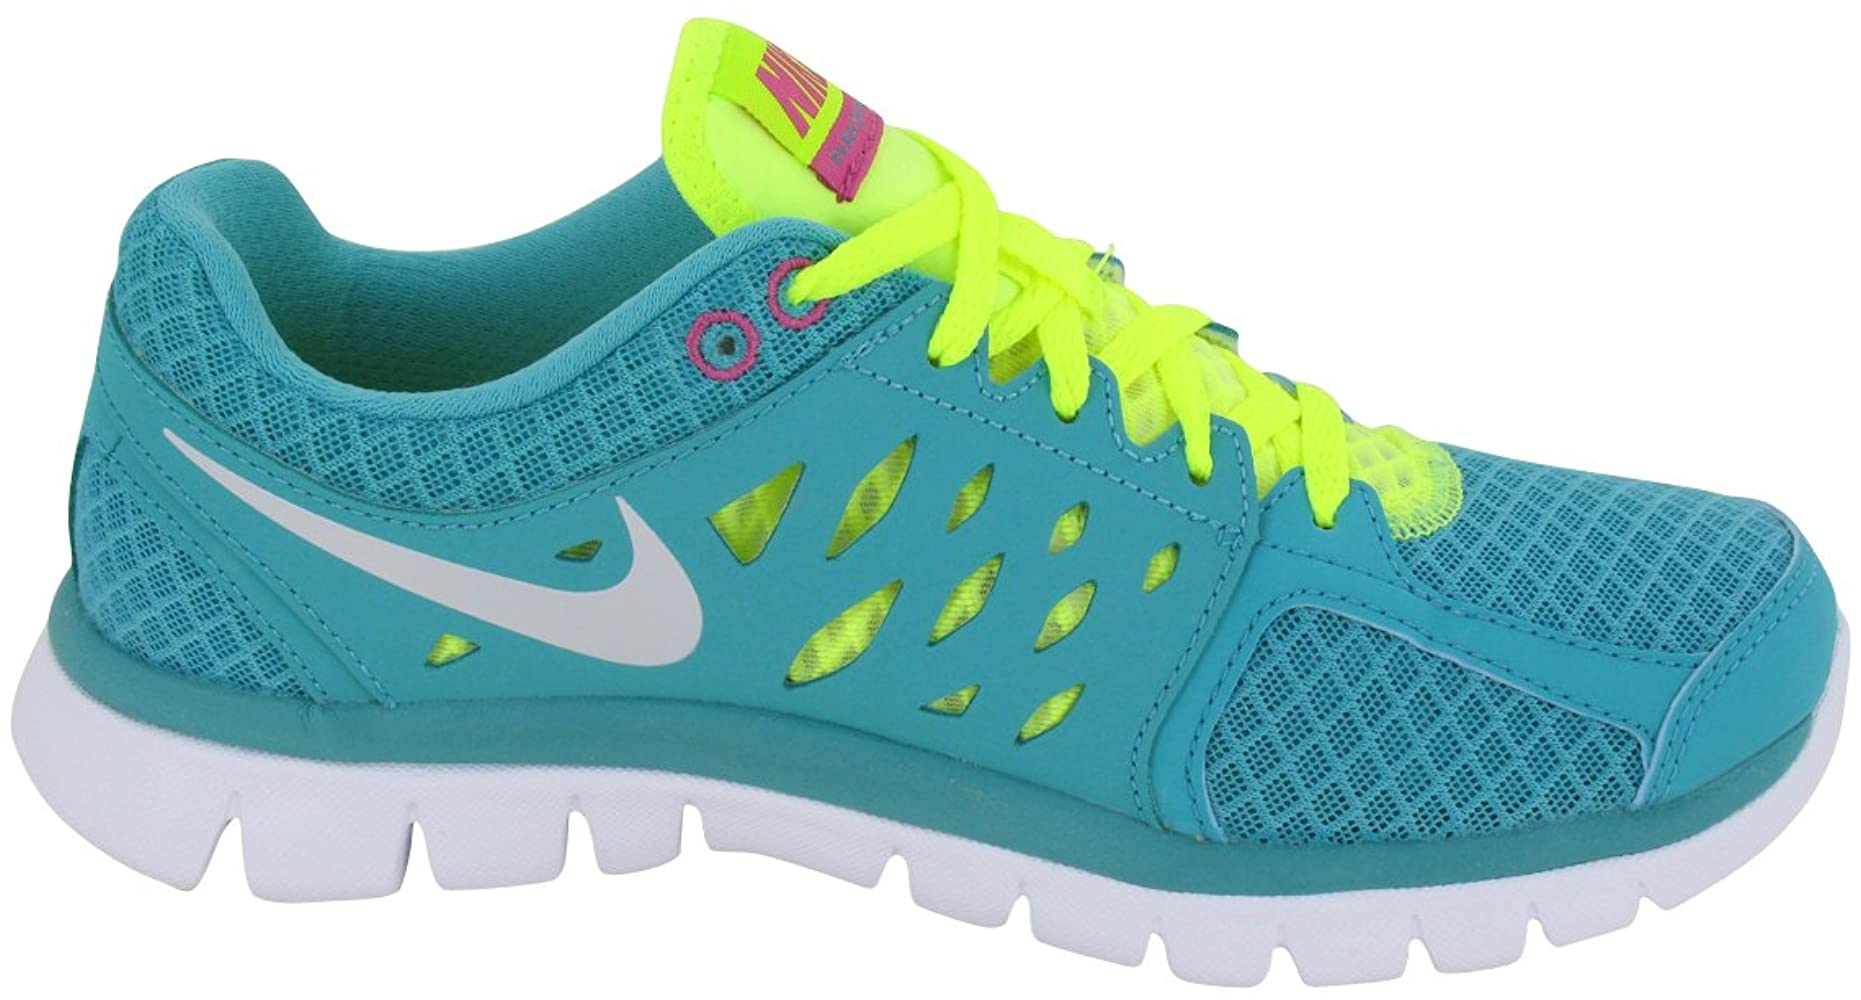 Nike Flex Run Sneakers